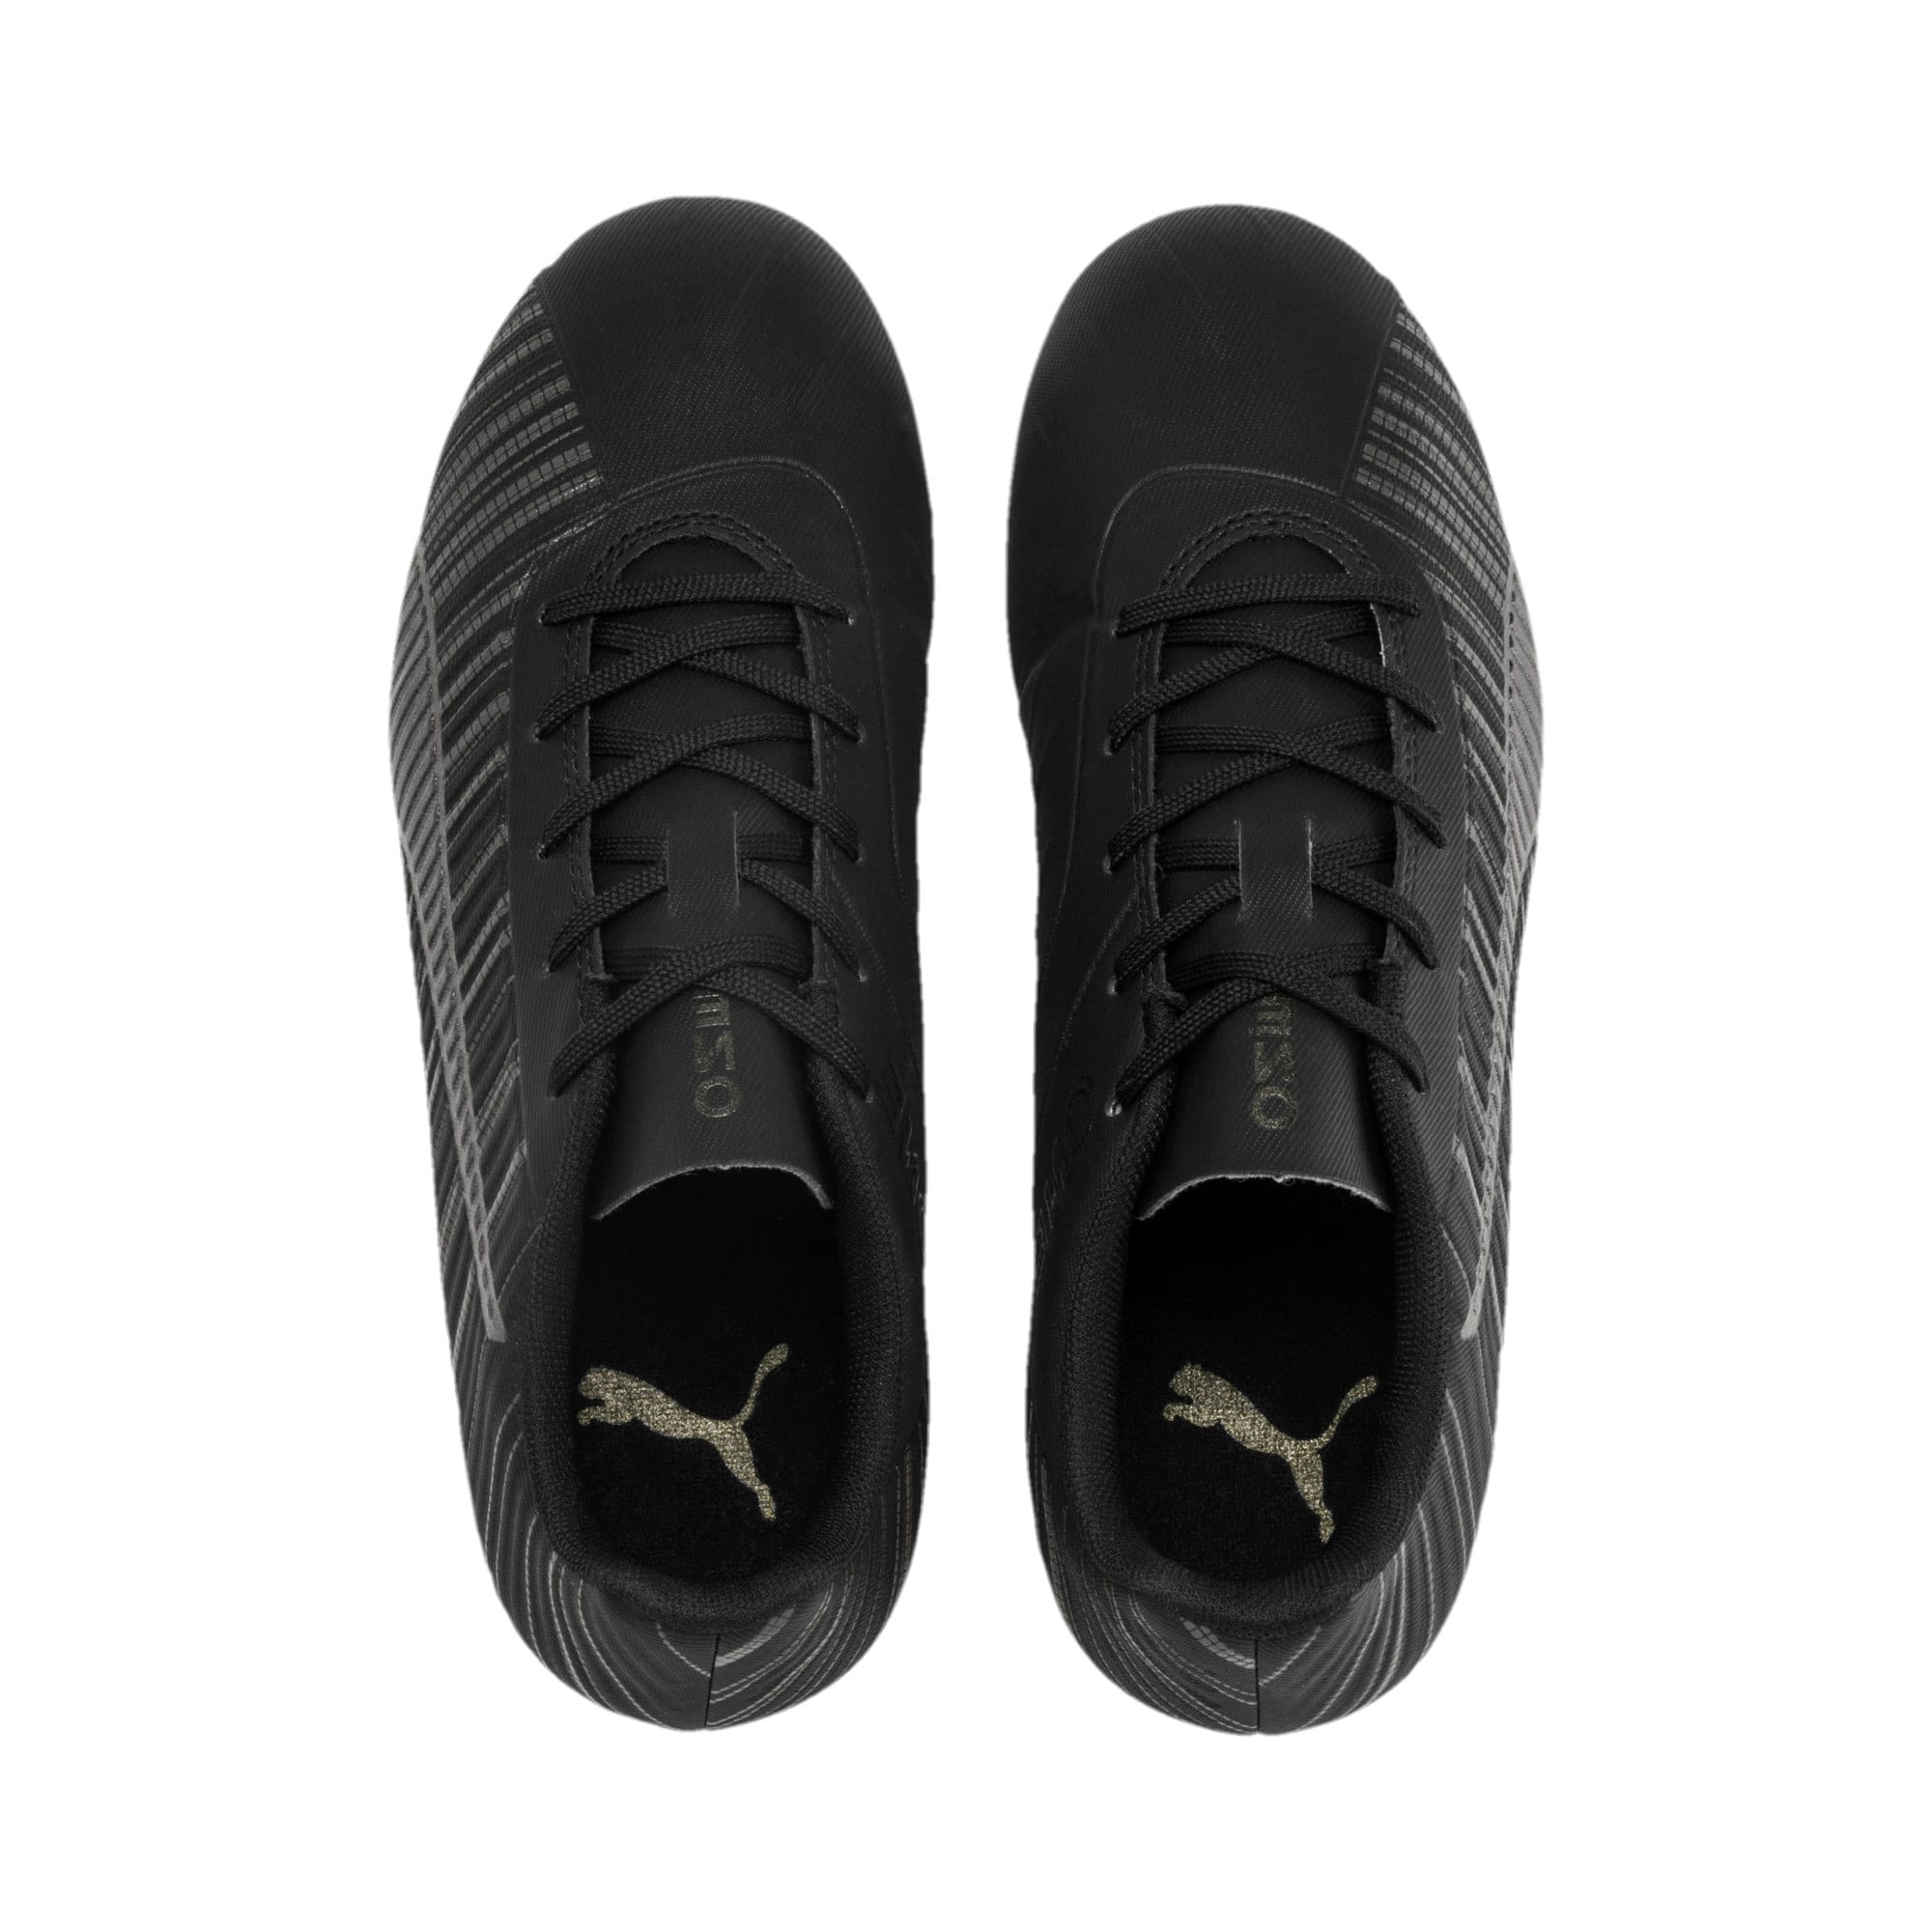 Thumbnail 6 of PUMA ONE 5.4 IT Youth Football Boots, Black-Black-Puma Aged Silver, medium